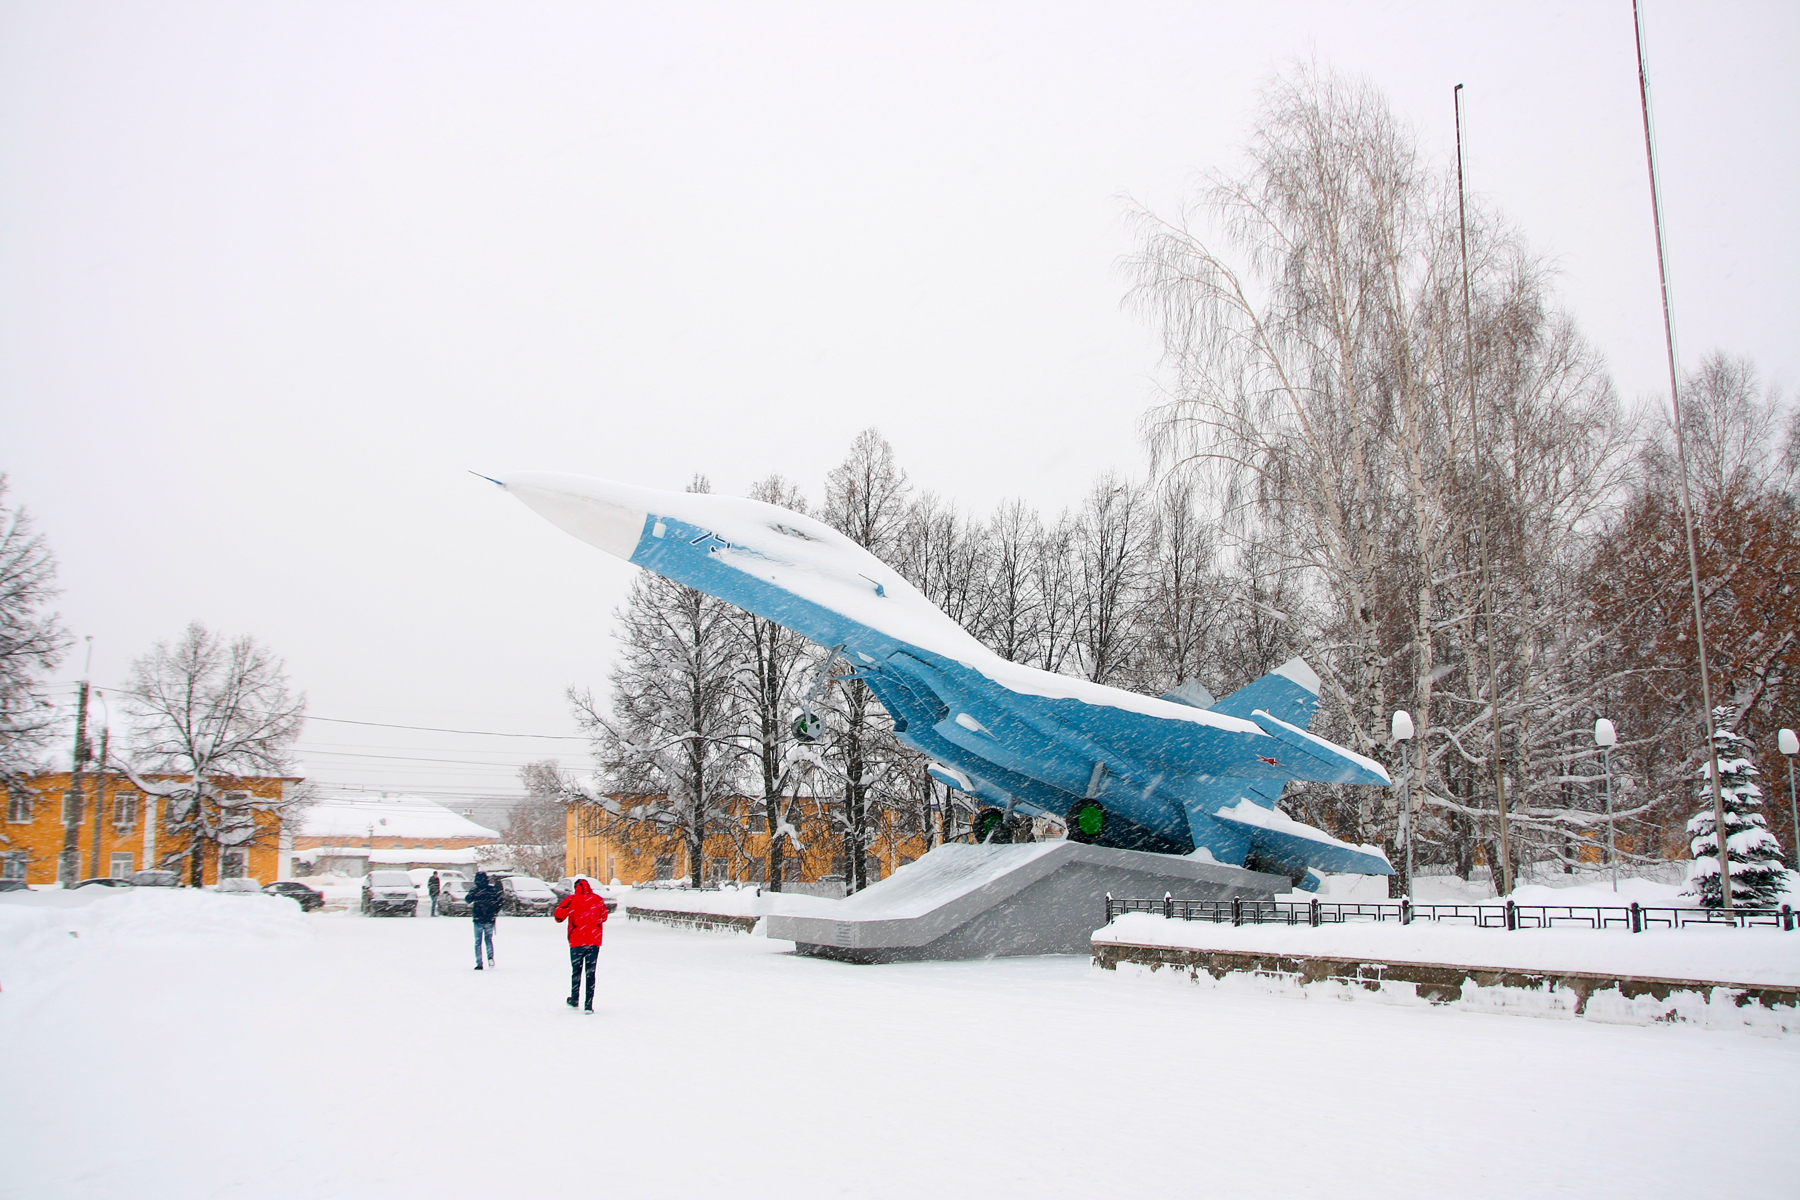 Airplane monument in winter photo